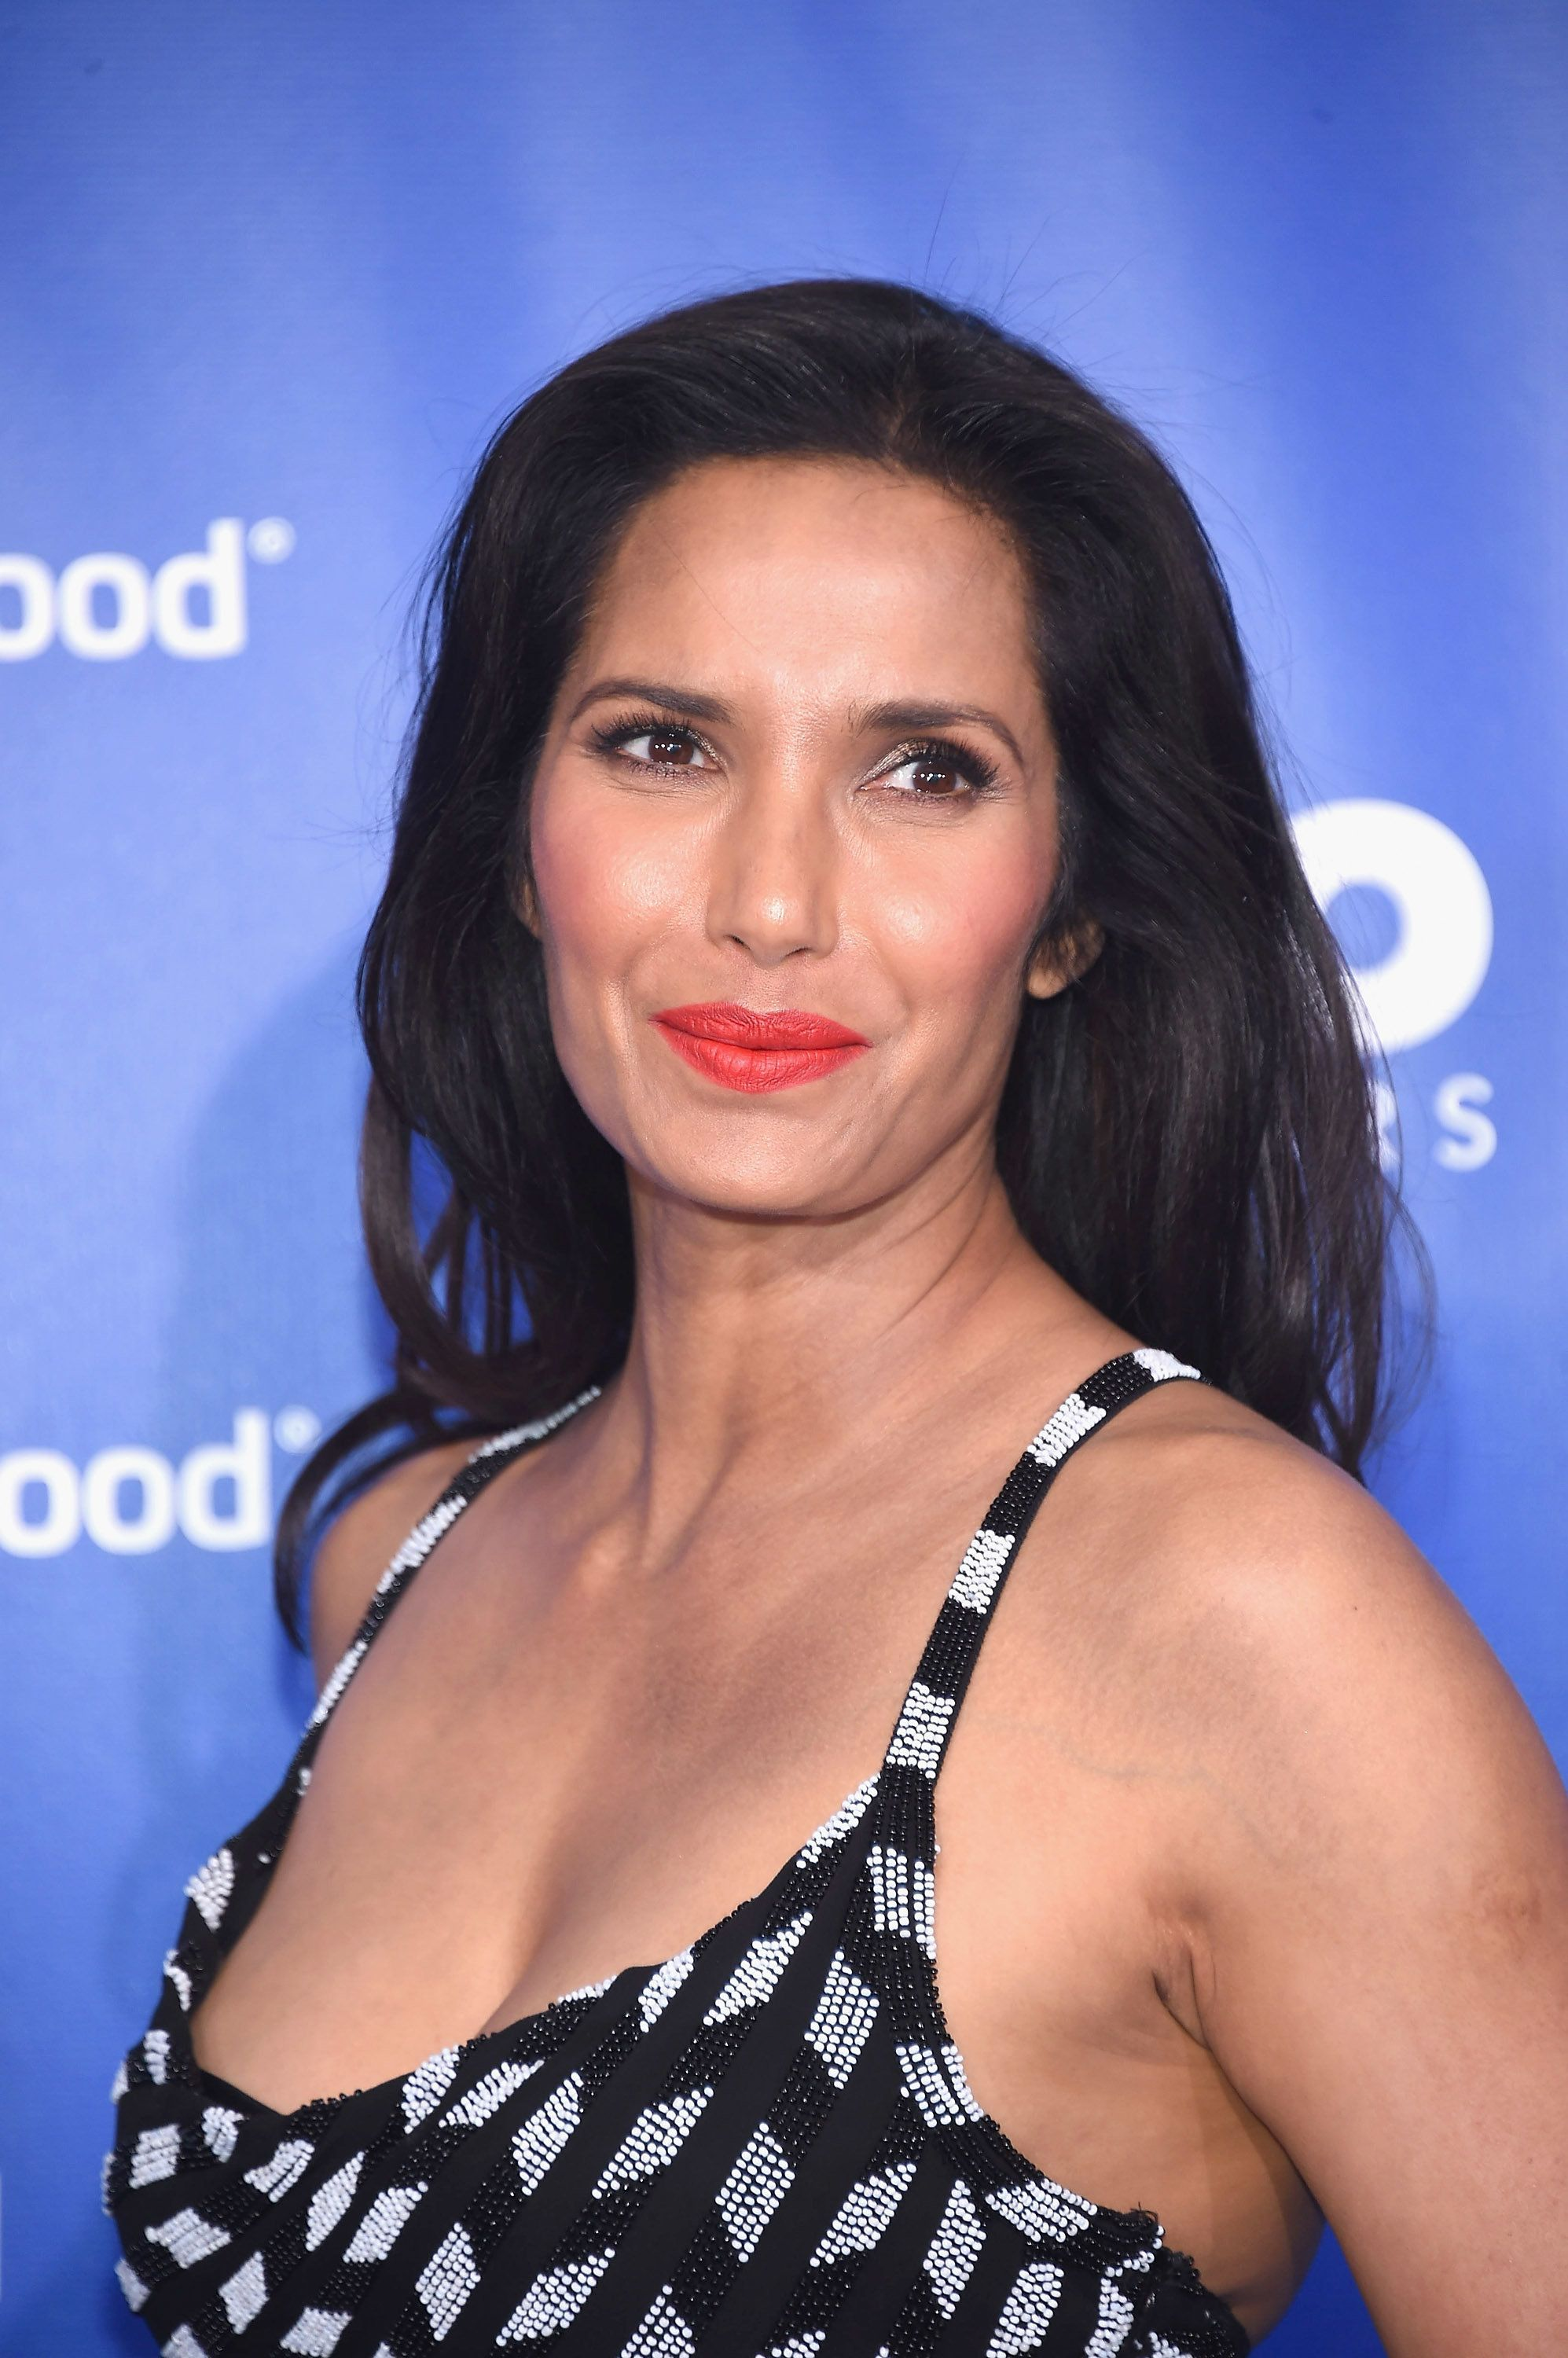 NEW YORK, NY - MAY 02:  Padma Lakshmi attends the Planned Parenthood 100th Anniversary Gala at Pier 36 on May 2, 2017 in New York City.  (Photo by Gary Gershoff/WireImage)